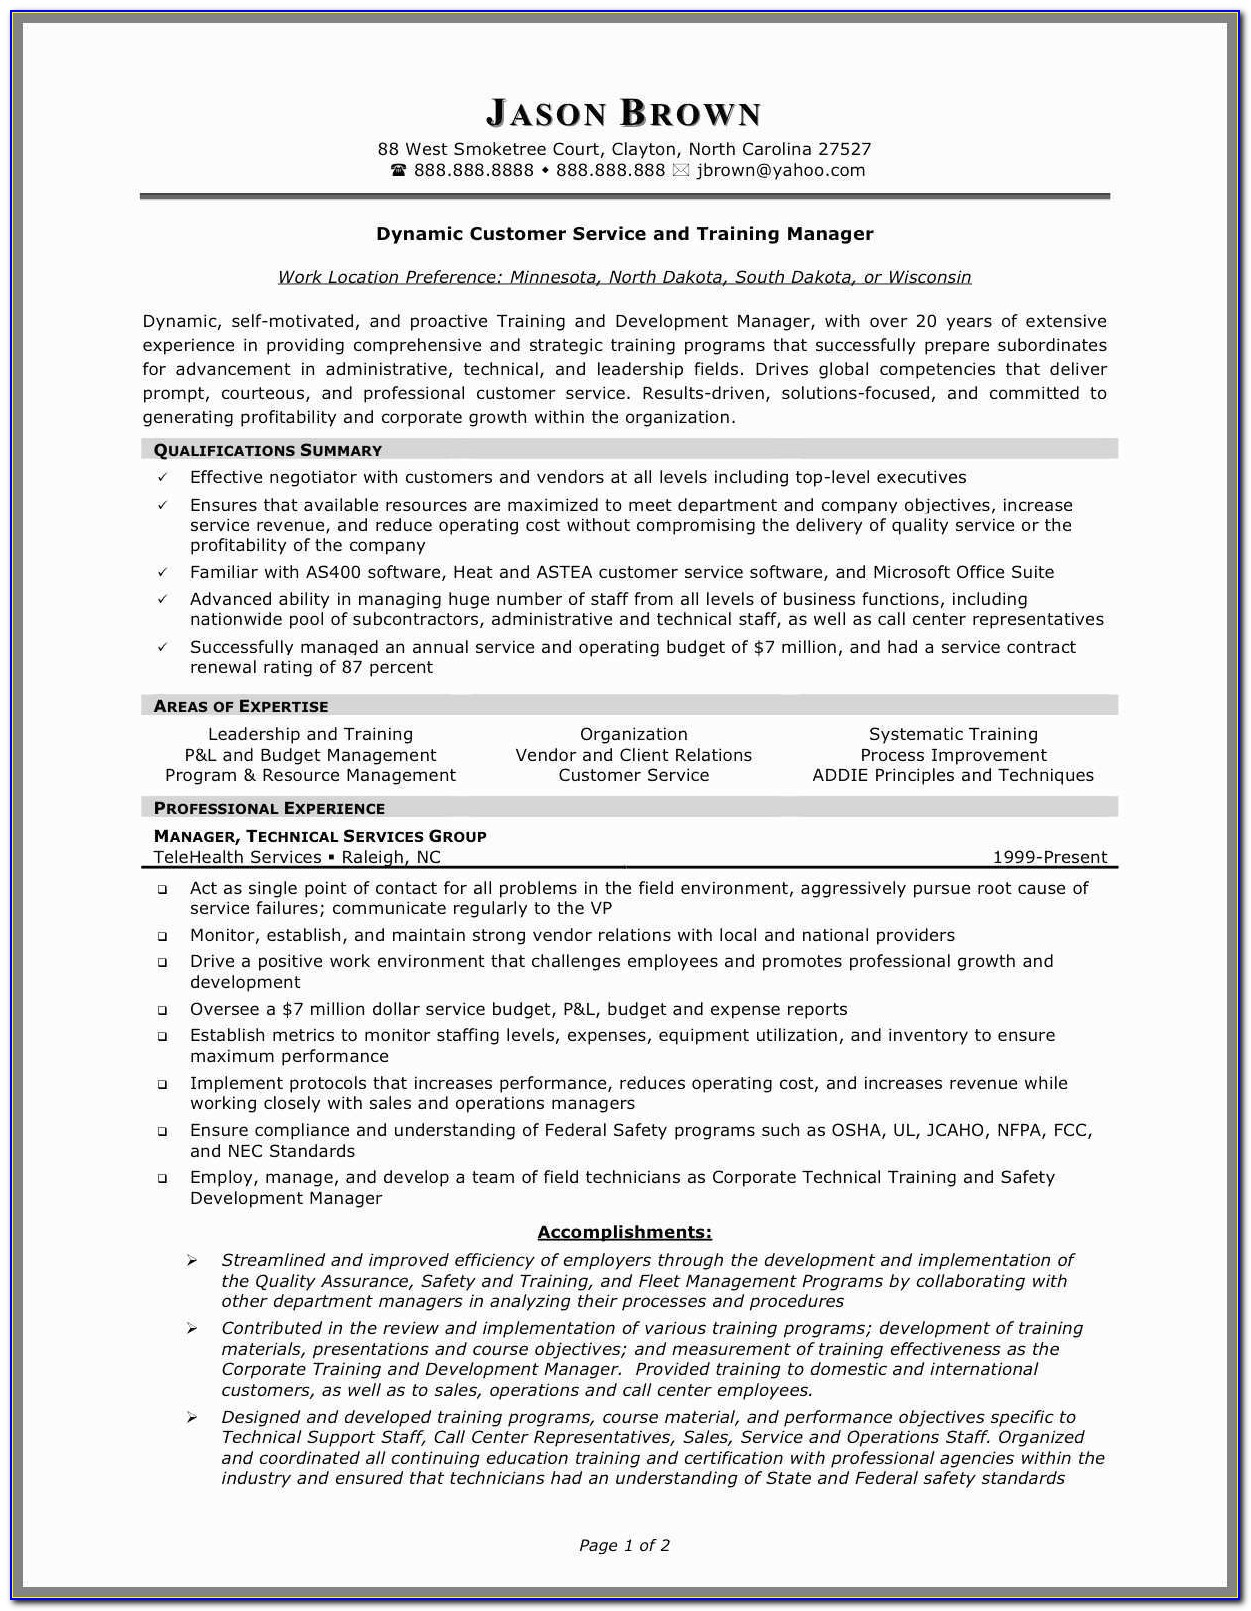 Best Resume Services 2017 Wonderfully Resume Examples Customer Service 2018